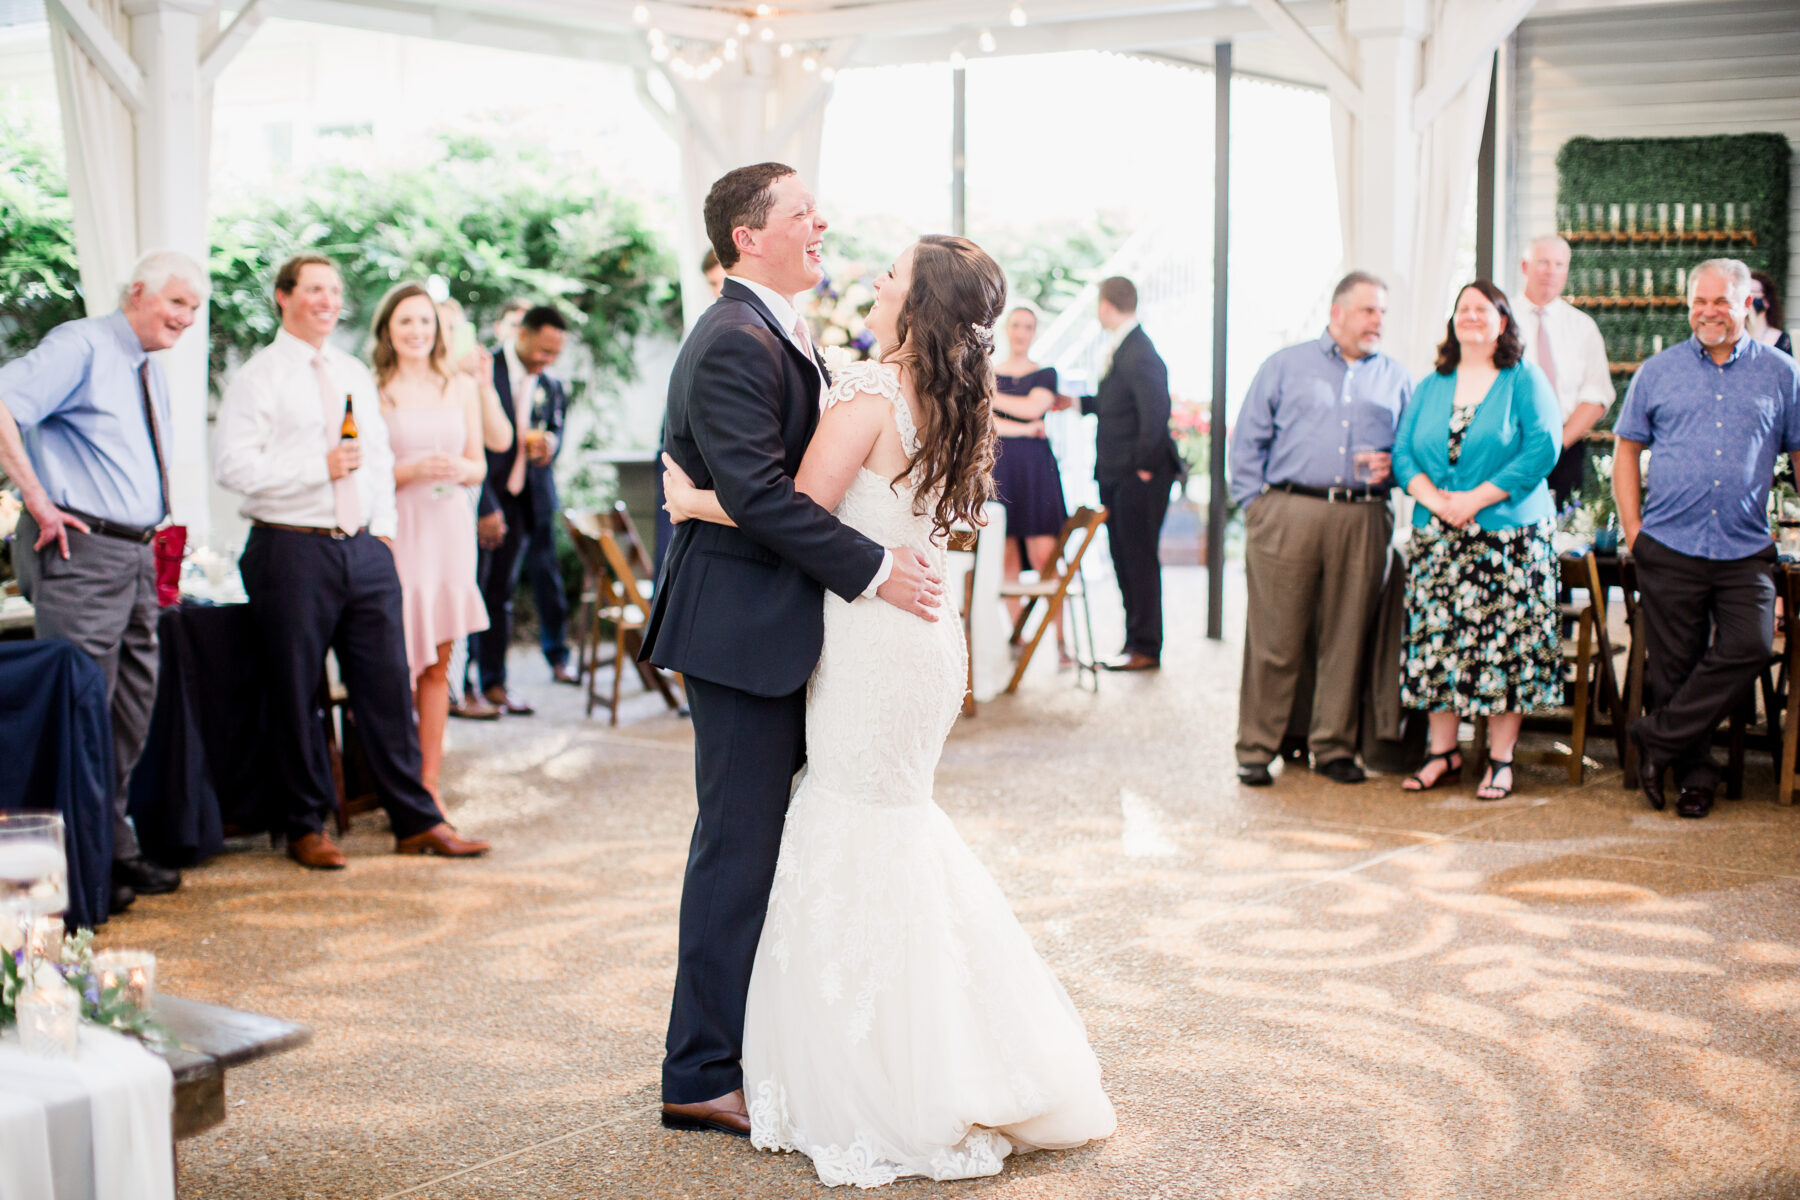 Wedding first dance at CJ's Off the Square | Nashville Bride Guide